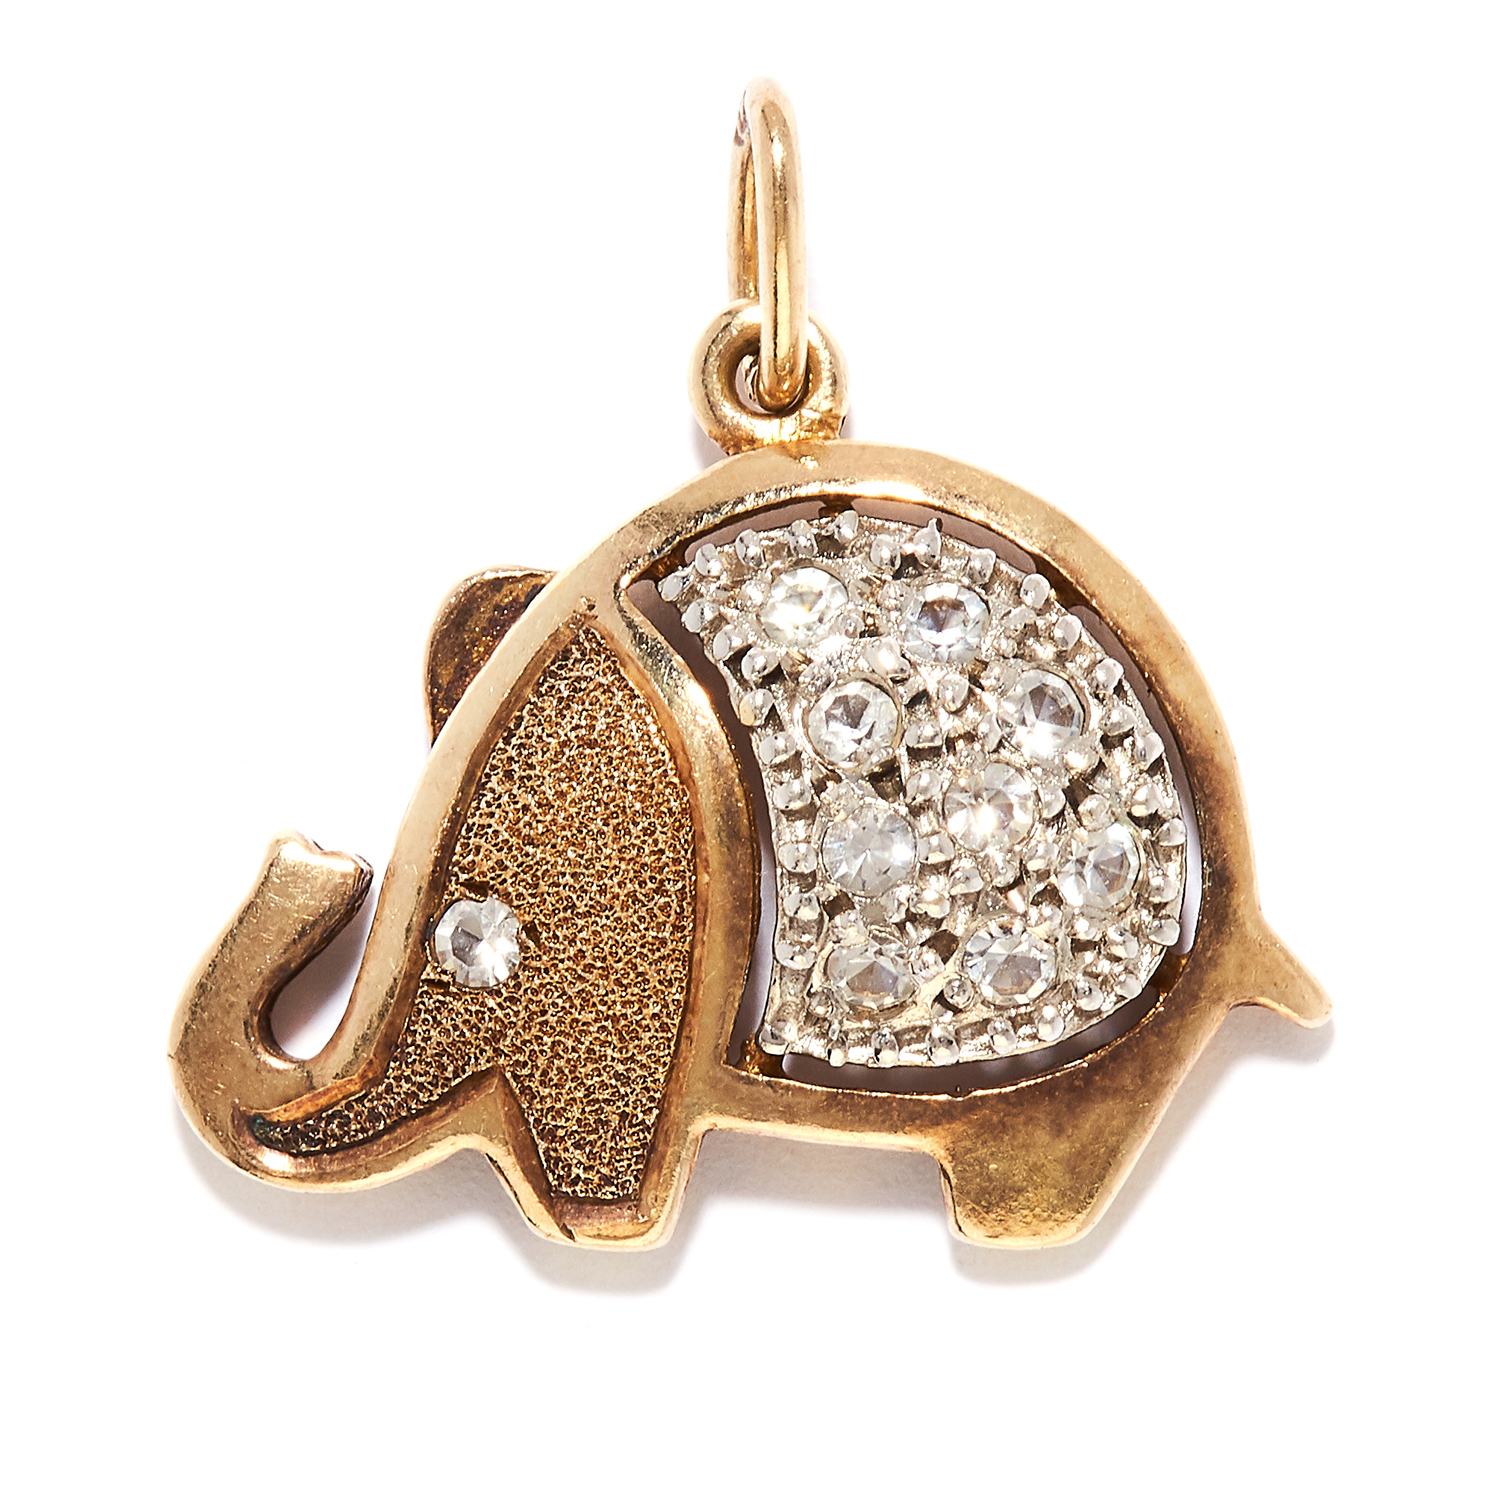 A CUBIC ZIRCONIA ELEPHANT CHARM in sterling silver, depicting an elephant set with round cut cubic